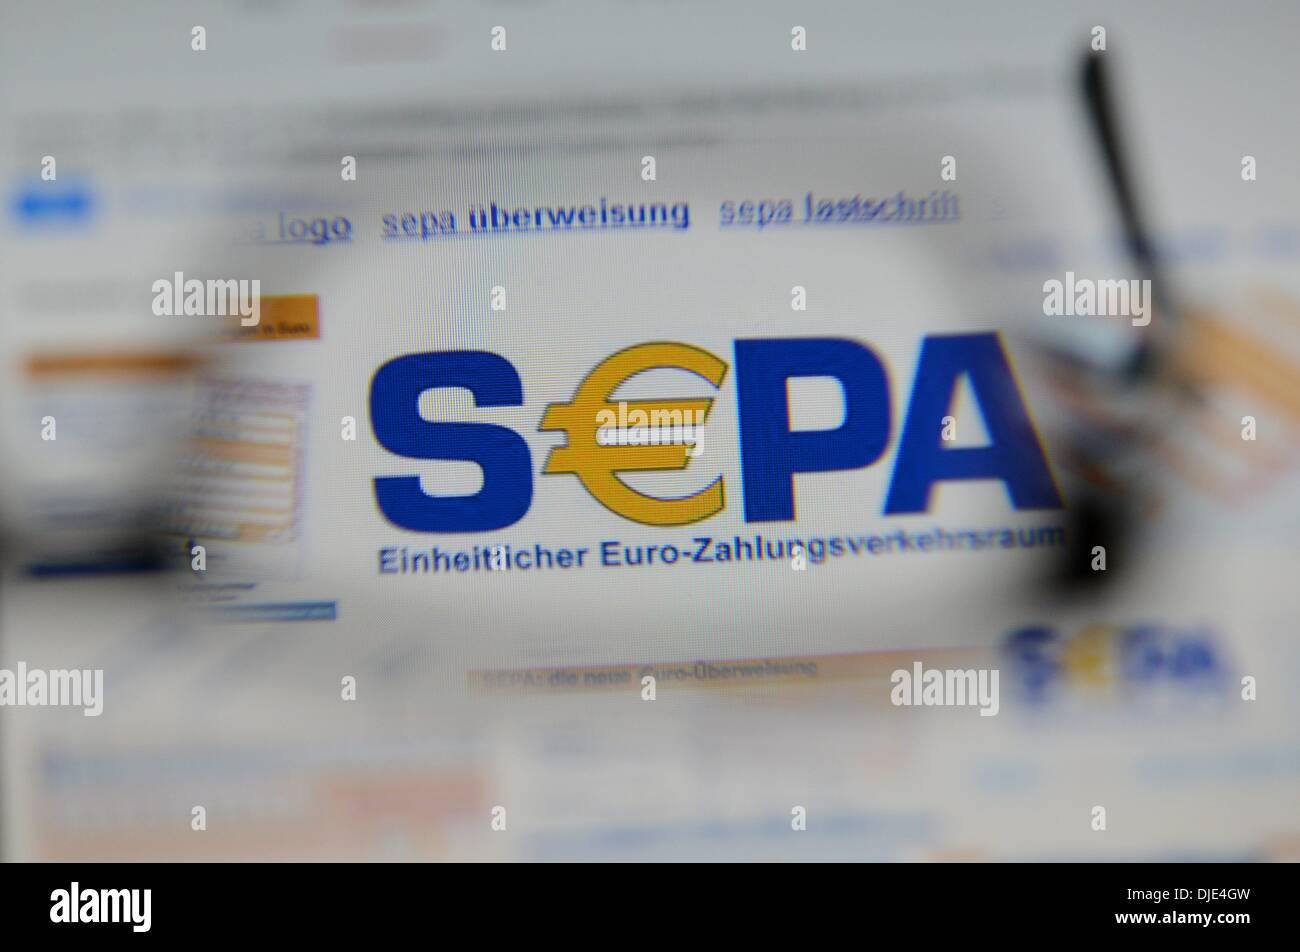 Osterode, Germany. 27th Nov, 2013. Illustration for Single Euro Payments Area (SEPA), which is a payment-integration initiative of the European Union for simplification of bank transfers denominated in euro, pictured in Osterode, Germany, 27 November 2013. Starting on 01 February 2014, the national account numbers are replaced by the IBAN number for national and international bank transfers as well as for direct debit. Photo: Frank May/dpa/Alamy Live News - Stock Image